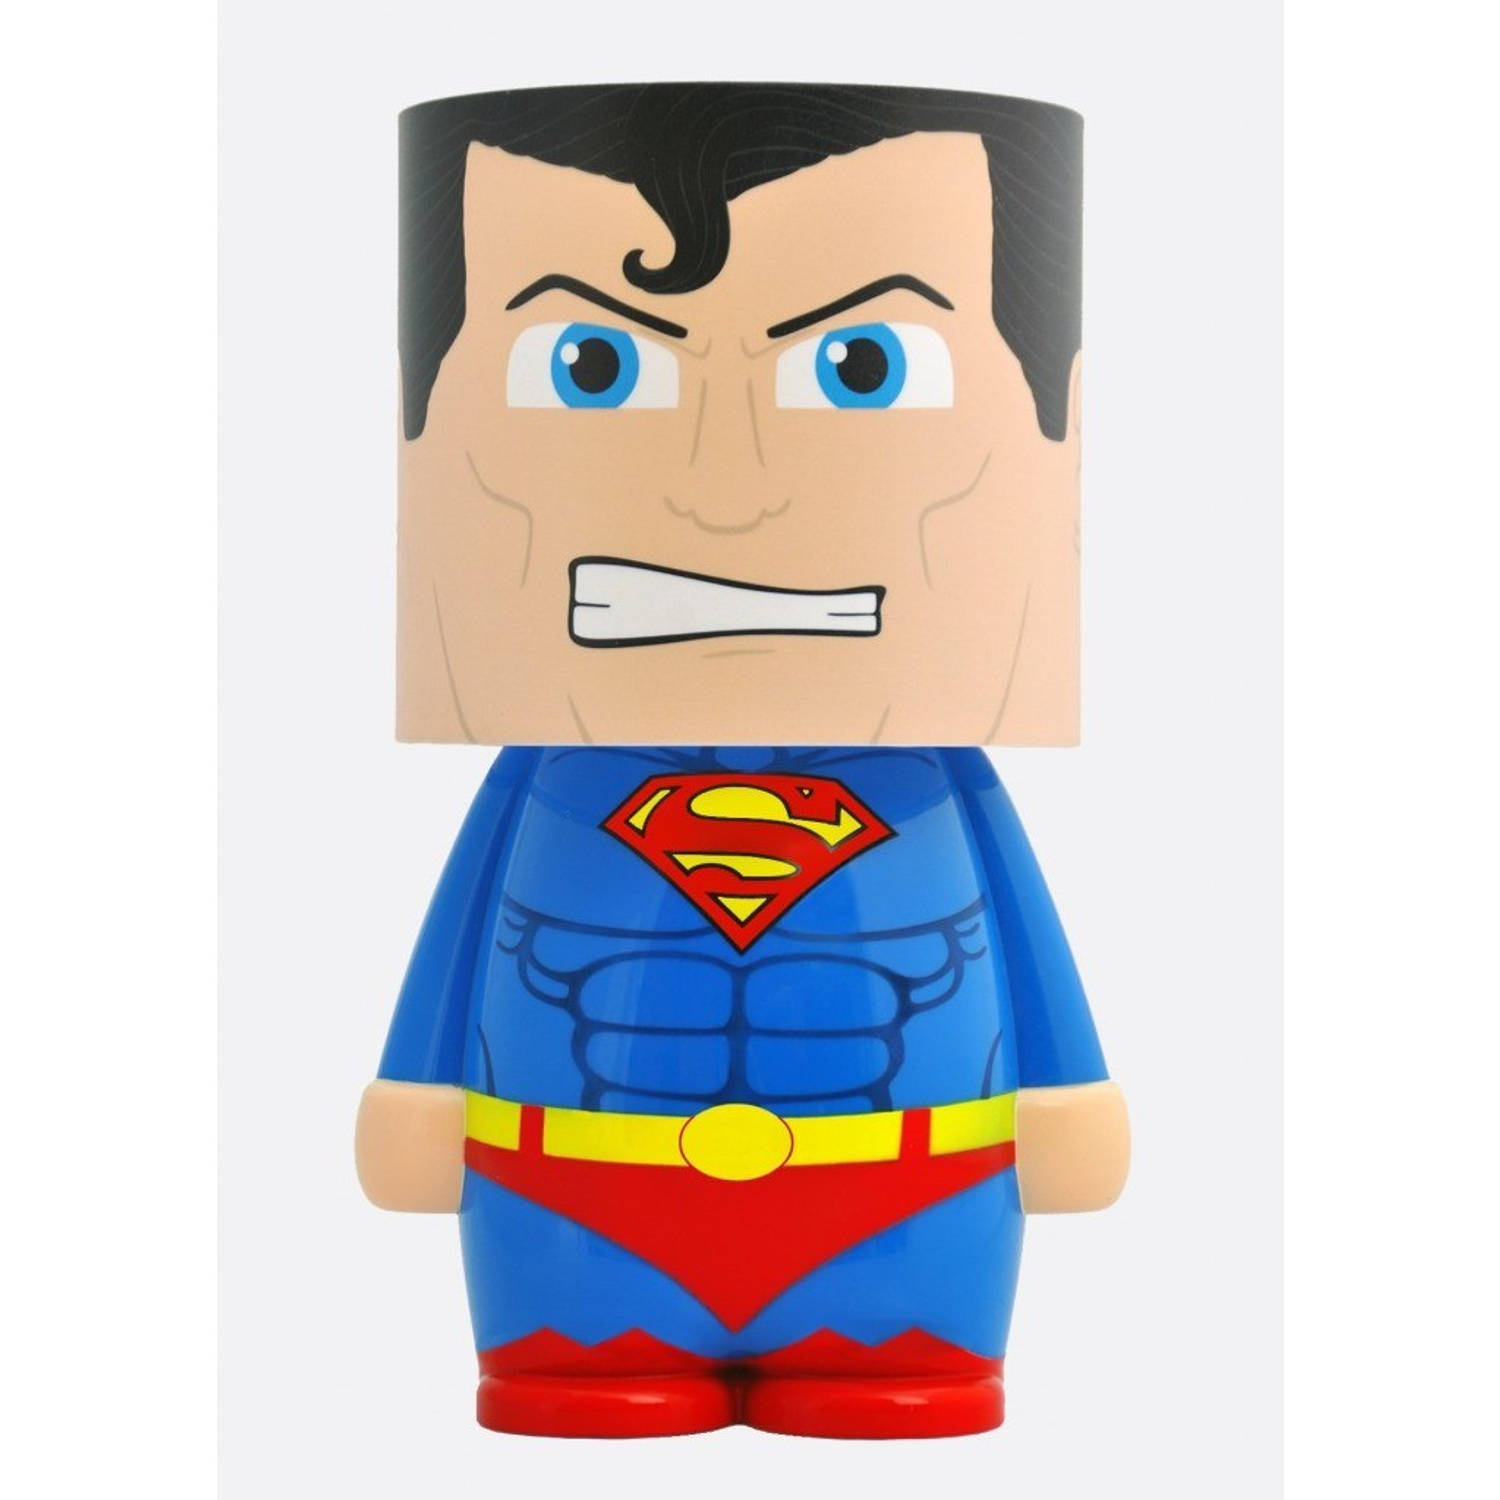 Look-a Lite: DC Comics - Superman Character